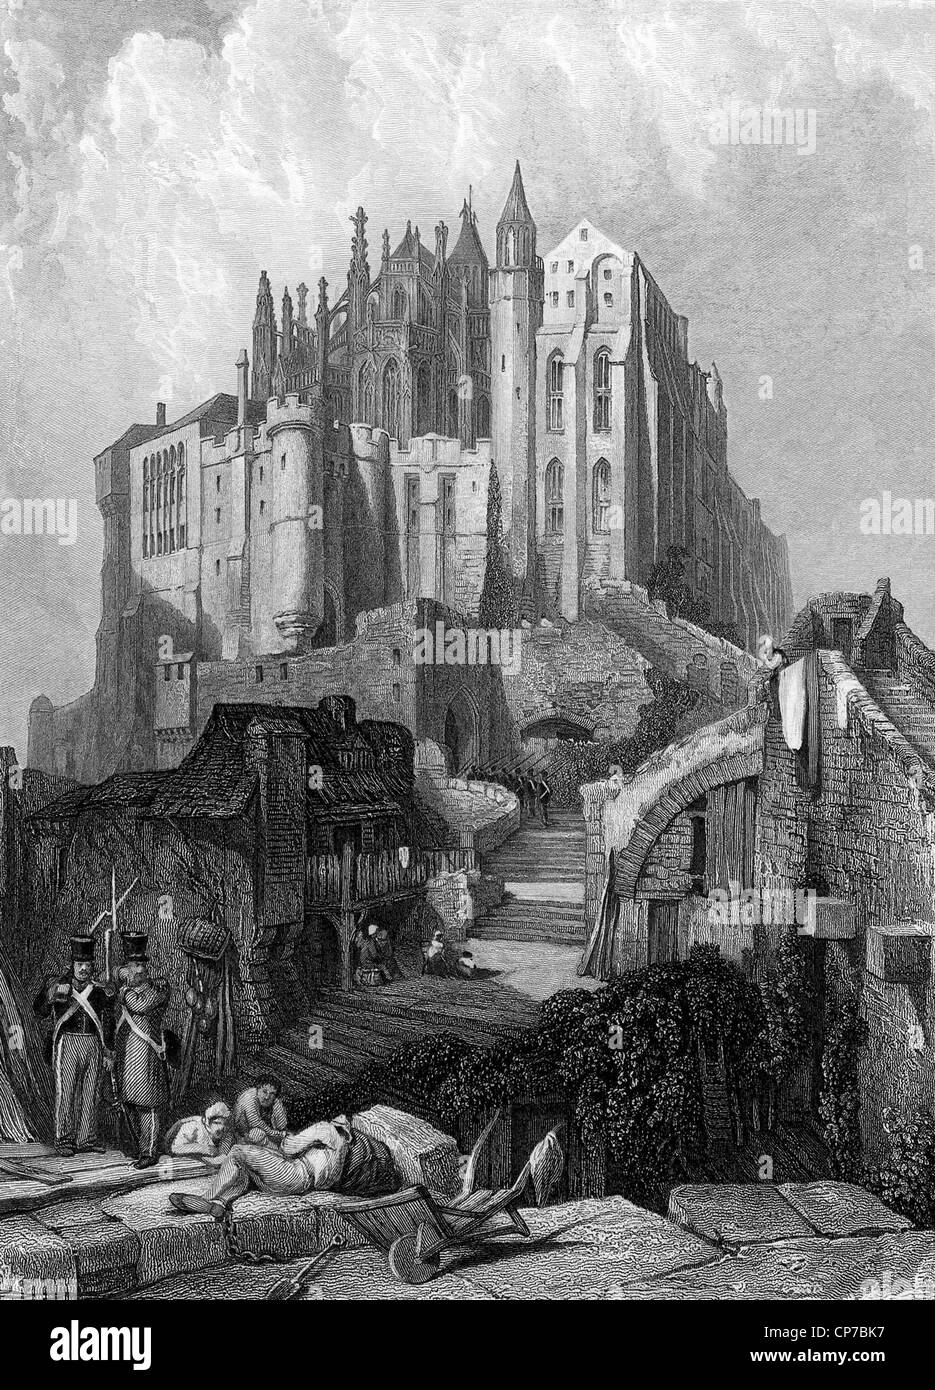 Scenic view of Mont Saint-Michel, Normandy, France. Engraved by William Miller in 1834. - Stock Image